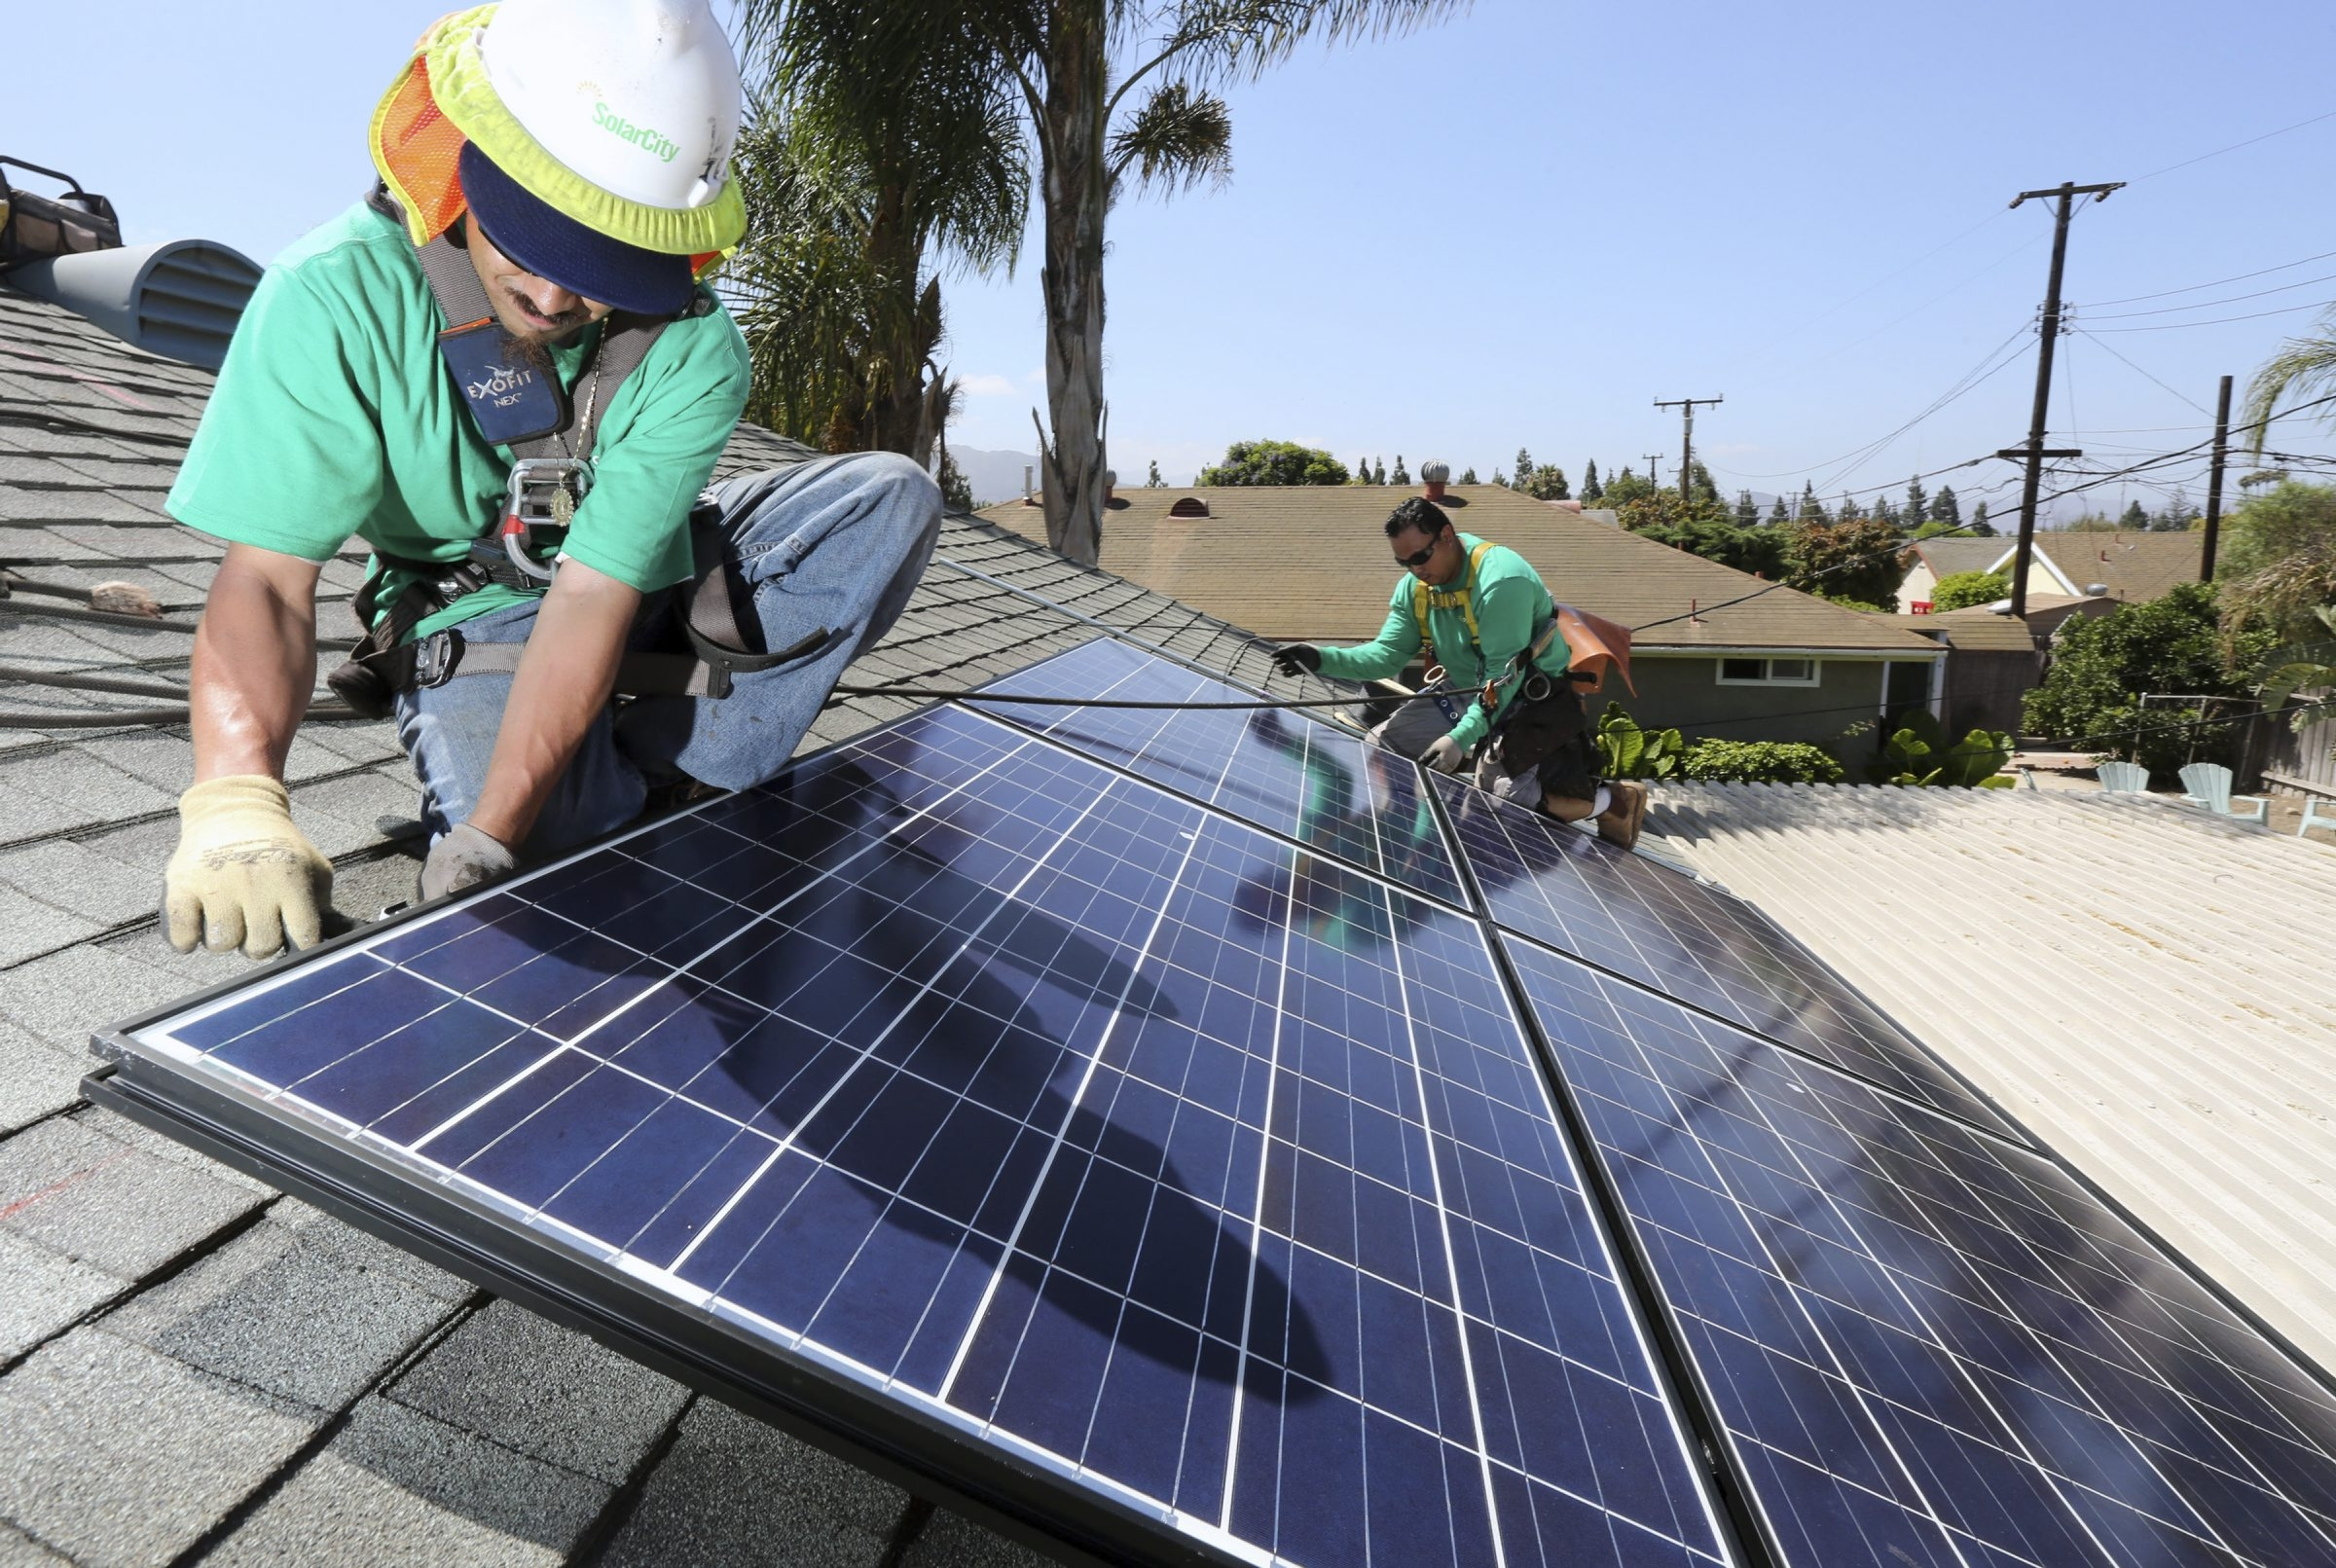 Workers from SolarCity install solar panels on a home in California. During the second quarter, the company cut its losses by more than half as revenues jumped by 68 percent from a year earlier.